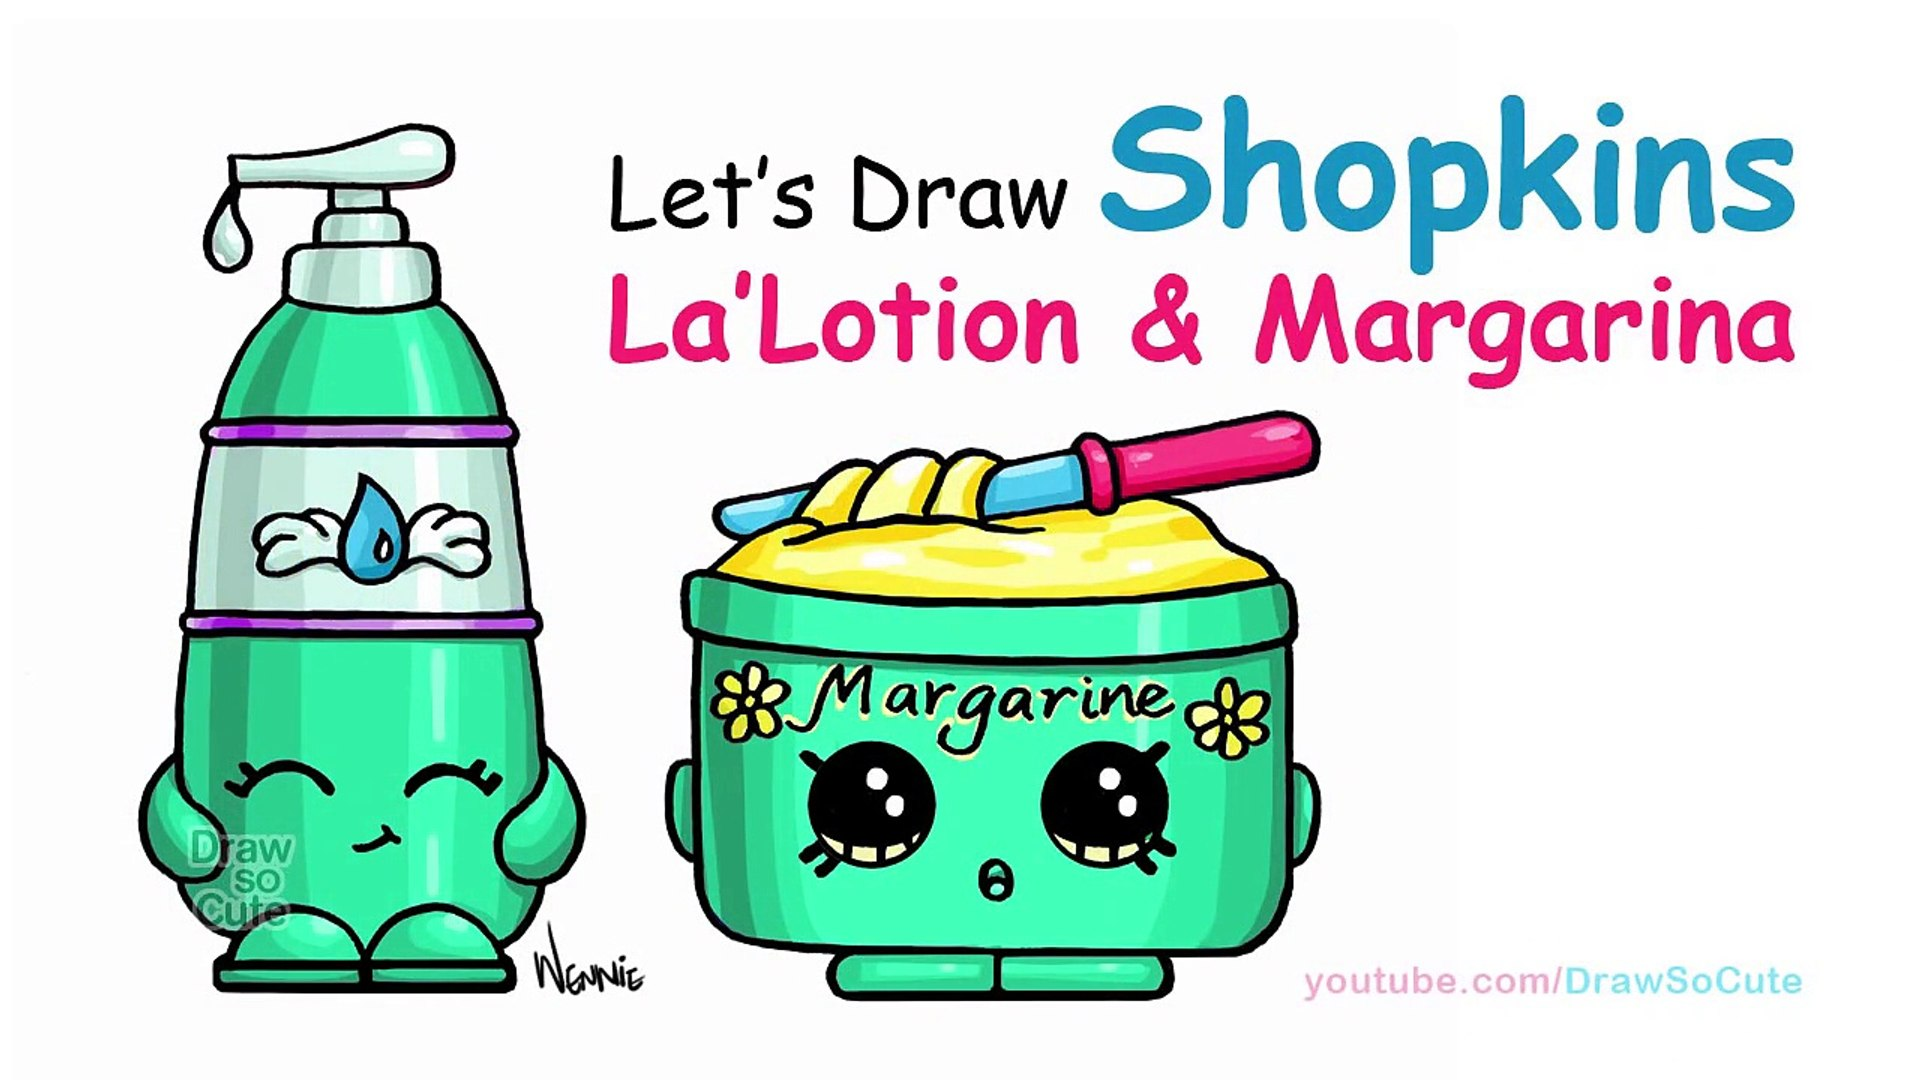 How To Draw Shopkins Lalotion And Margarina Cute And Easy Step By Step Video Dailymotion